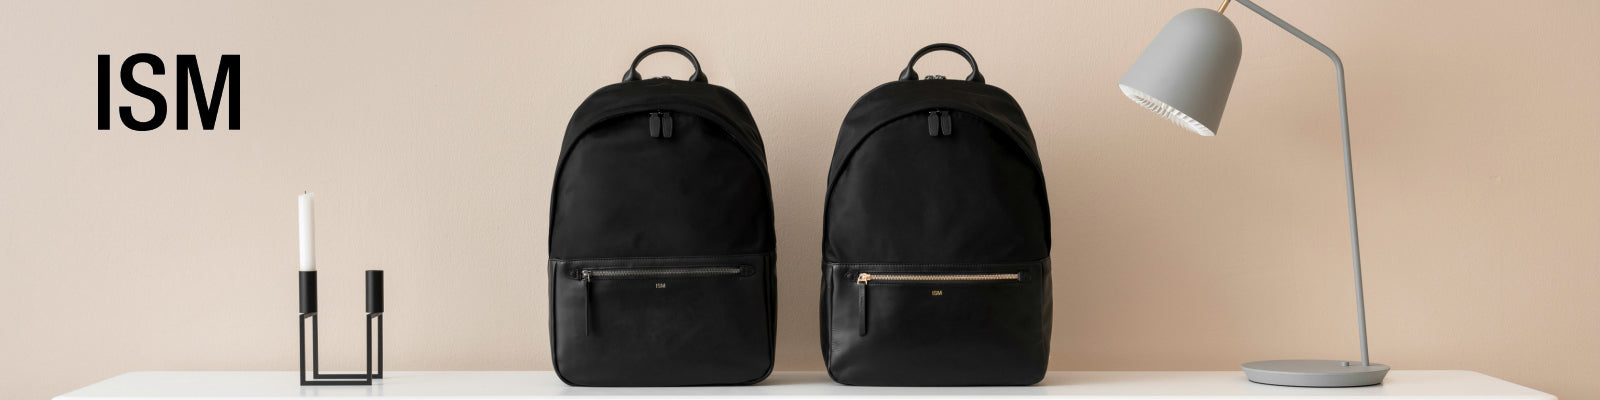 ISM Backpacks available online at Sportique.